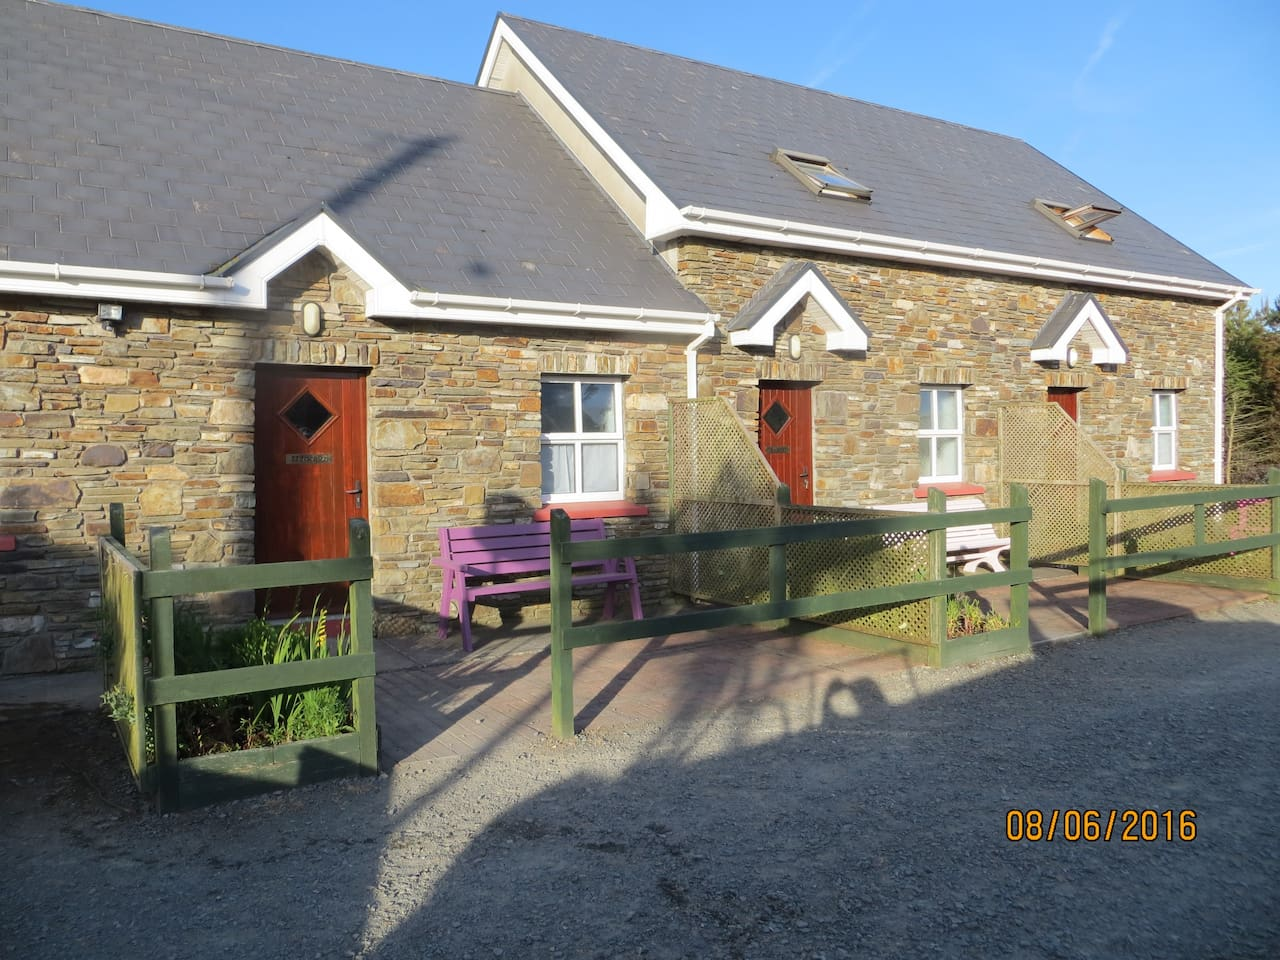 Maulin, Milleeny and Miskish cottages at Inches House, Eyeries, Beara, Co. Cork Ireland